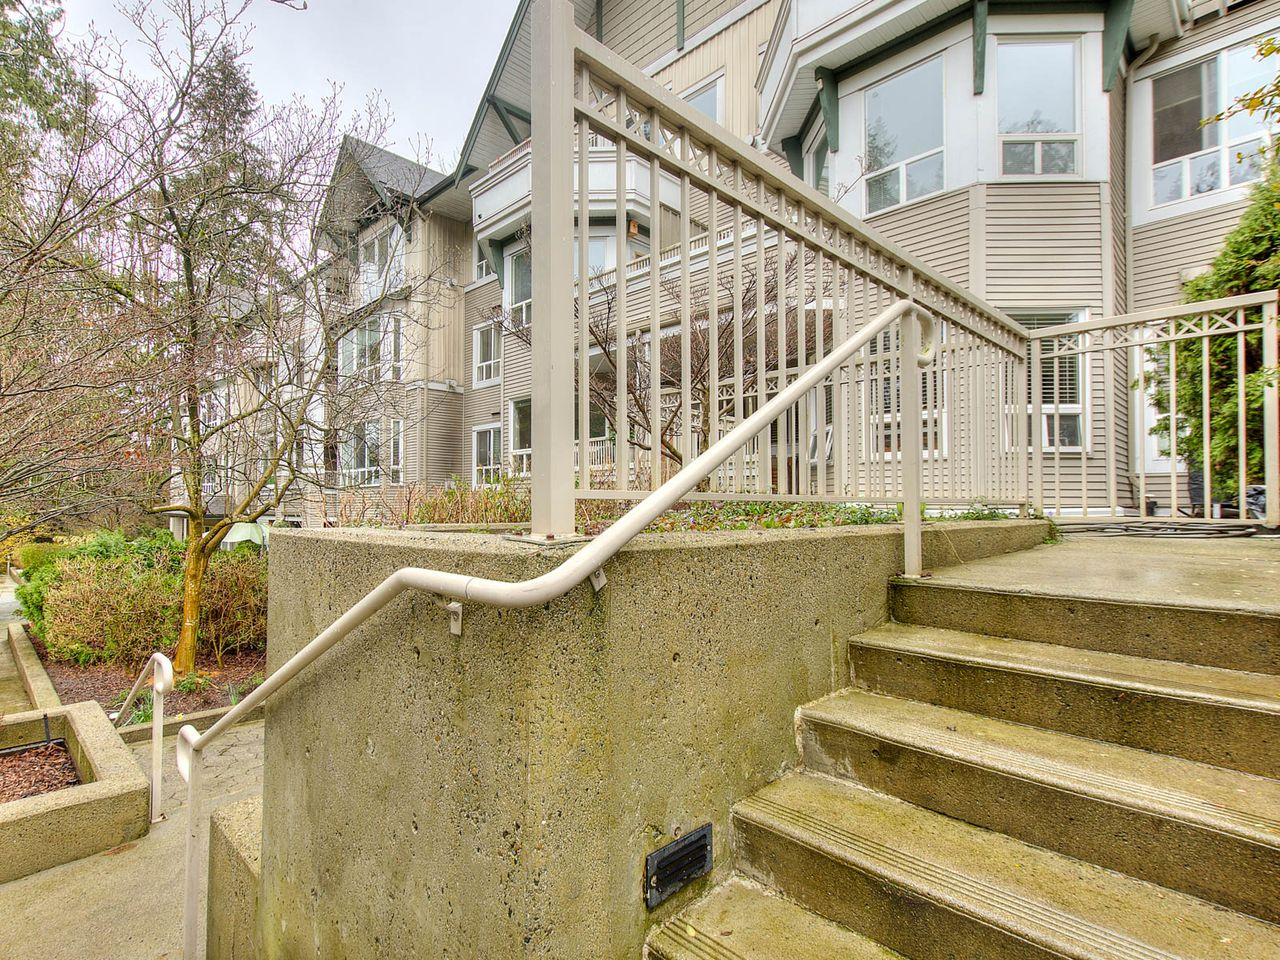 218-7383-griffiths-burnaby-20 at 218 - 7383 Griffiths Drive, Highgate, Burnaby South